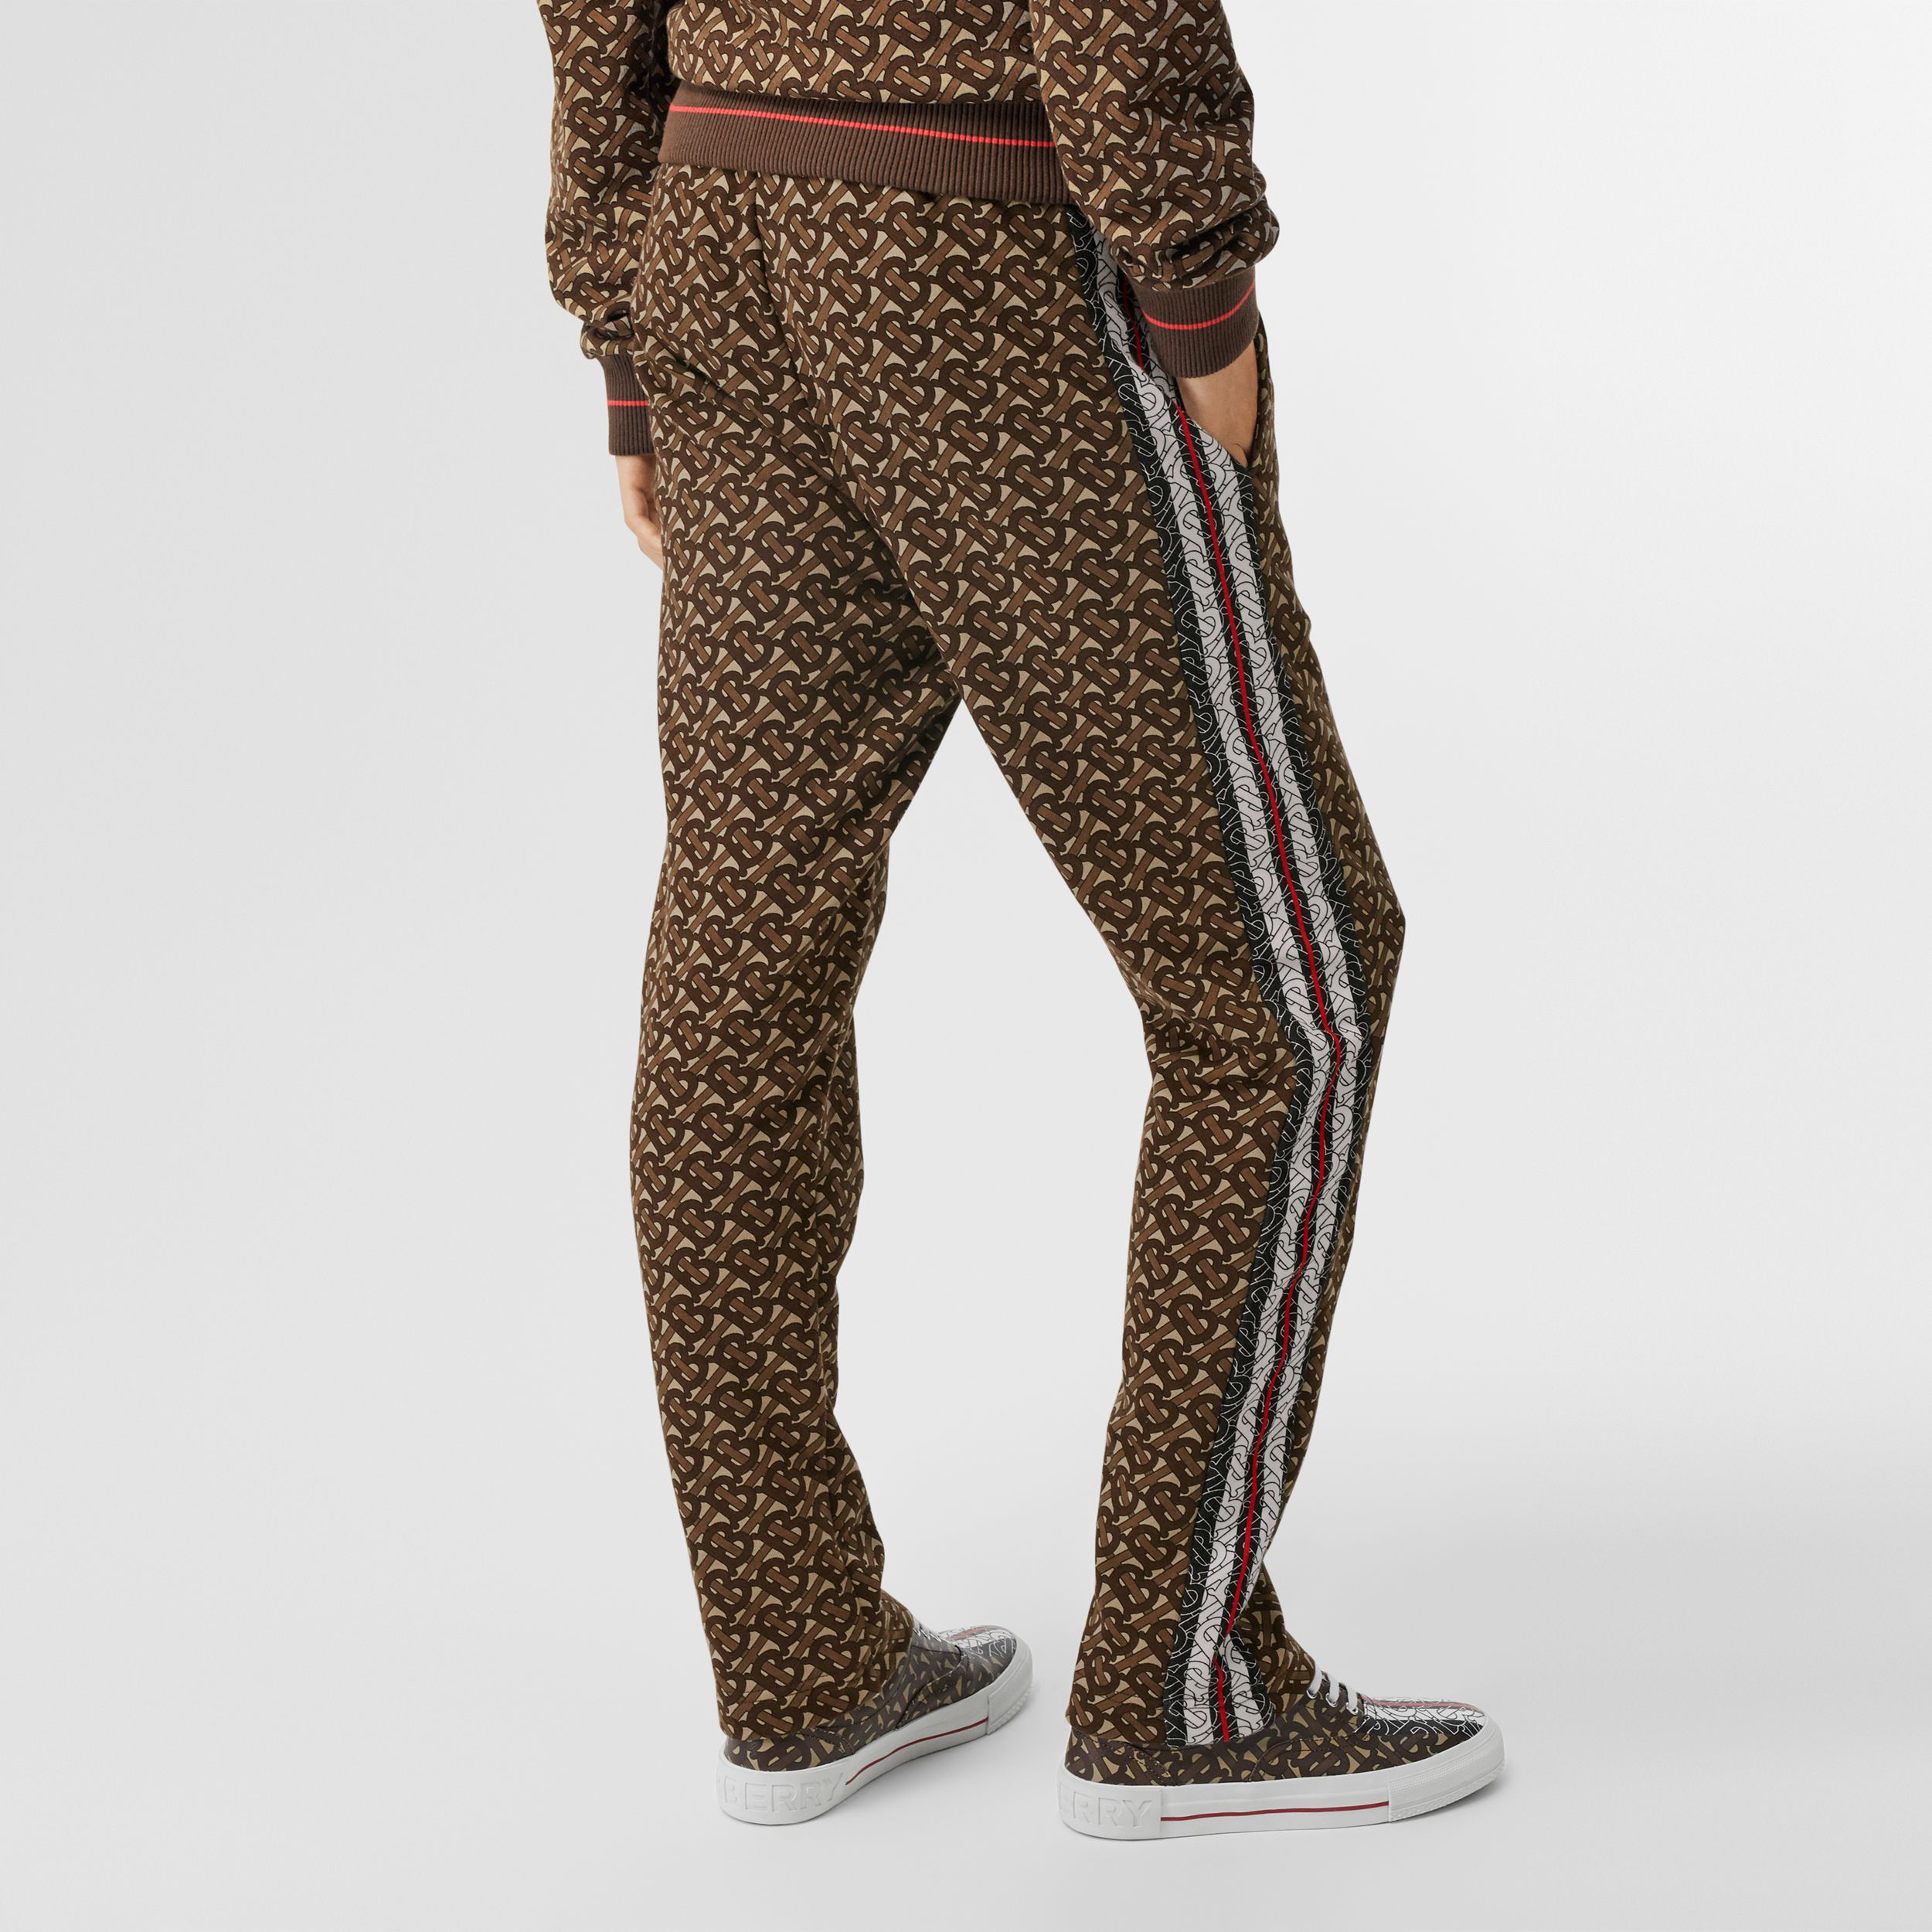 Monogram Stripe Print Cotton Jogging Pants in Bridle Brown - Women | Burberry - 2